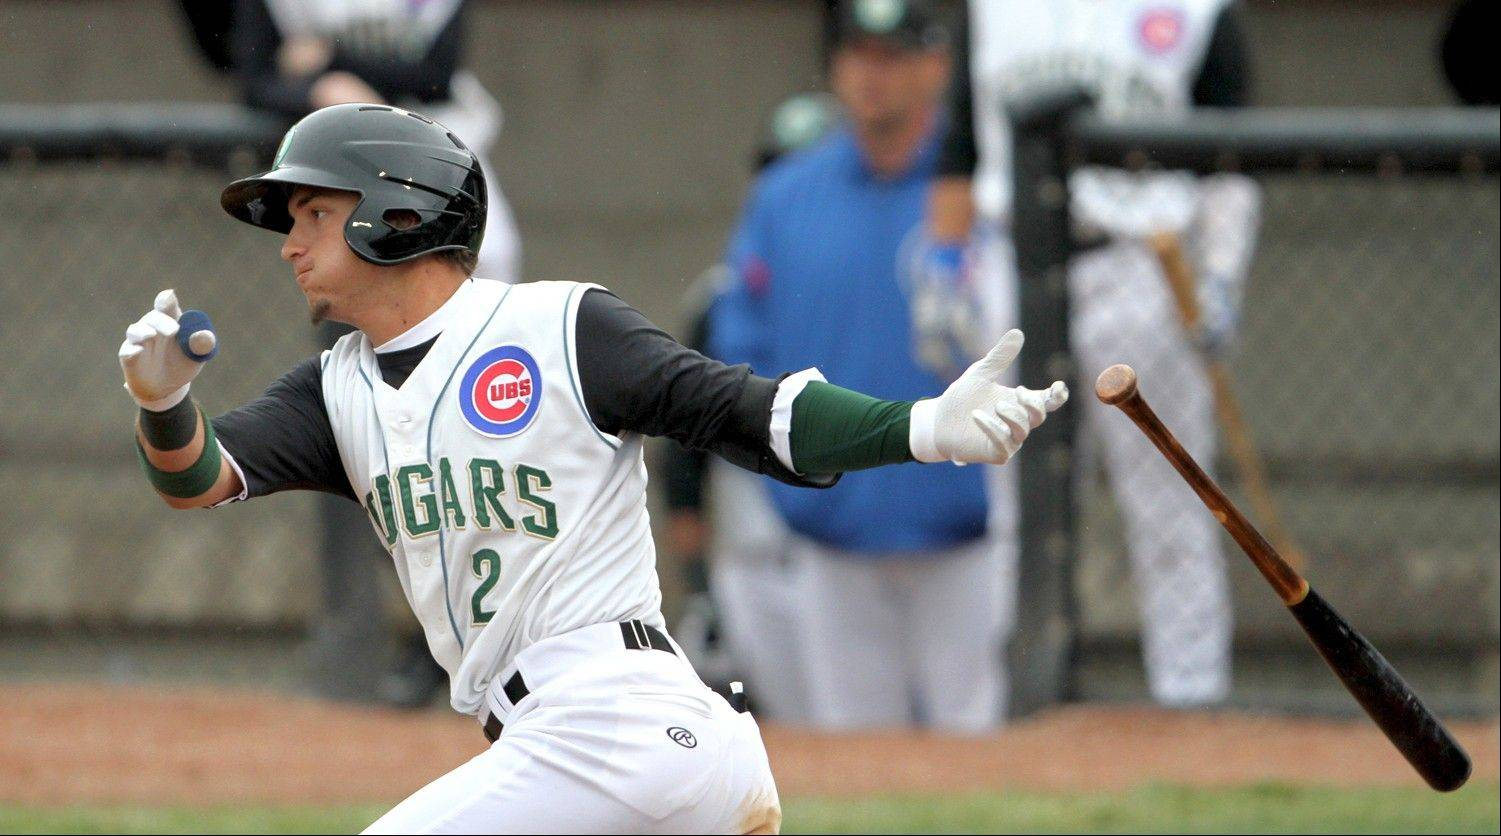 It hasn't been the best of seasons for the Kane County Cougars, but Cubs prospect Albert Almora and his teammates understand it's more about player development than wins and losses.